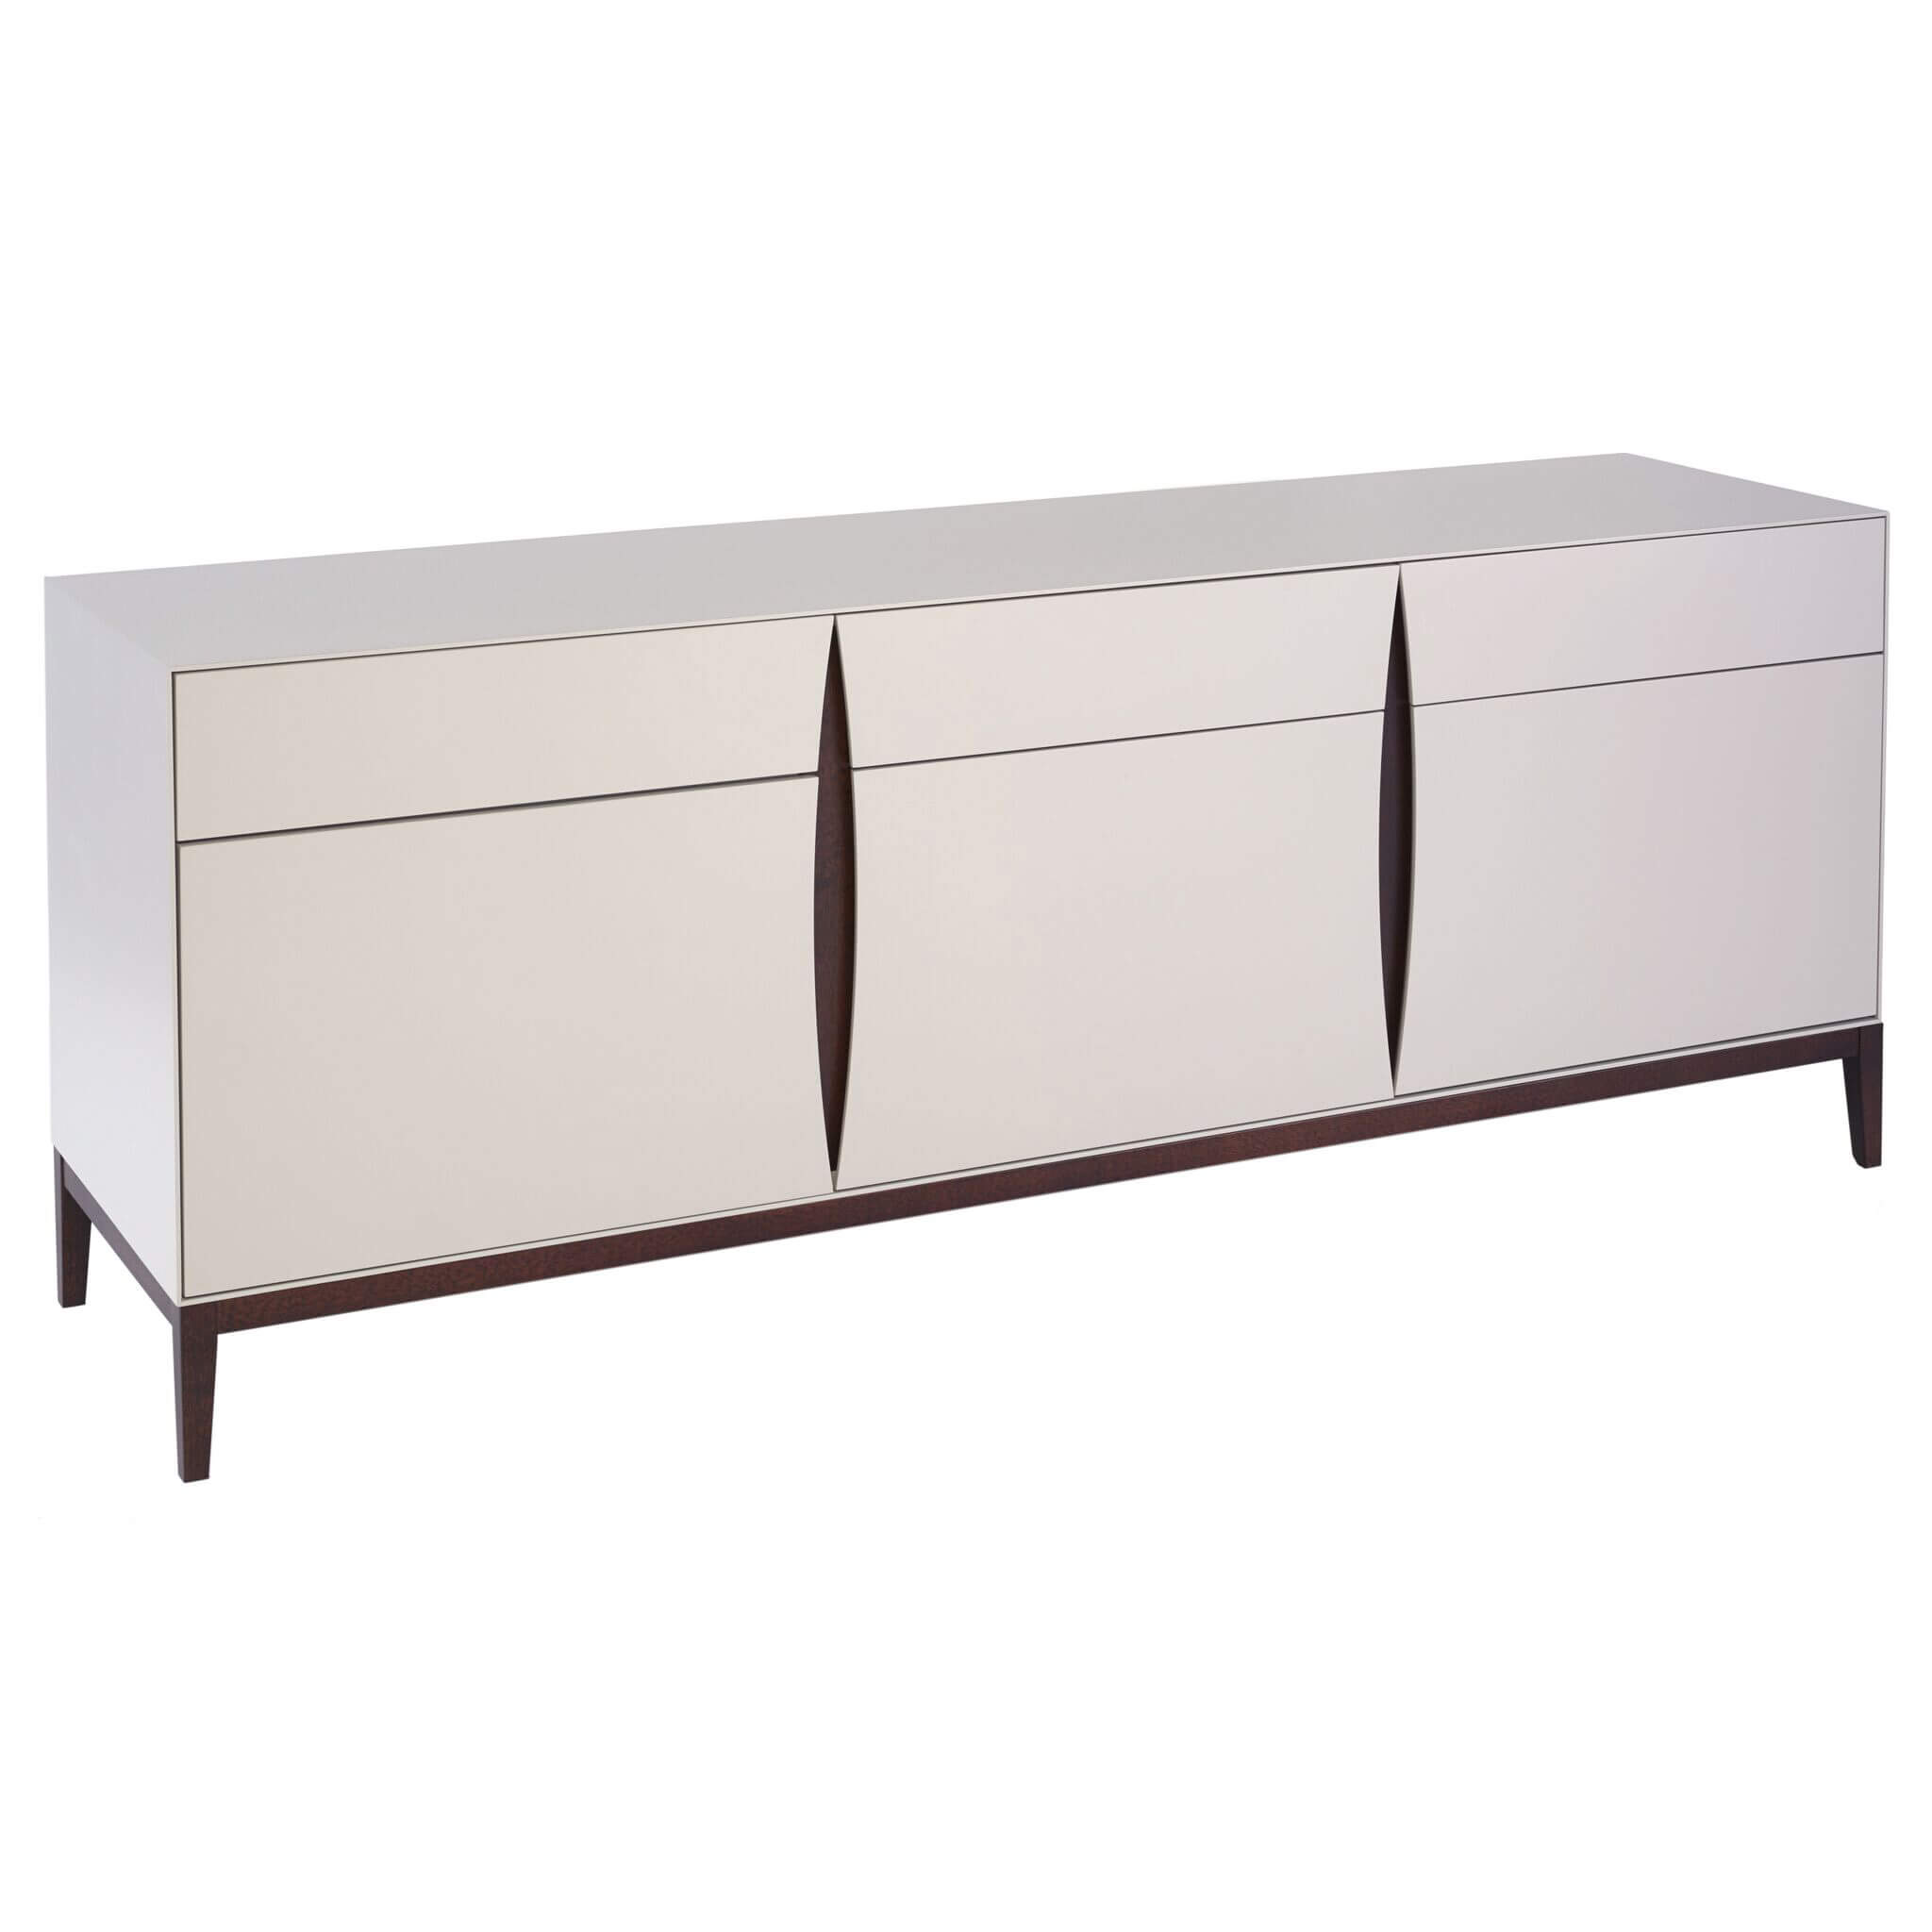 Lux Sideboard 3 drawers 3 doors